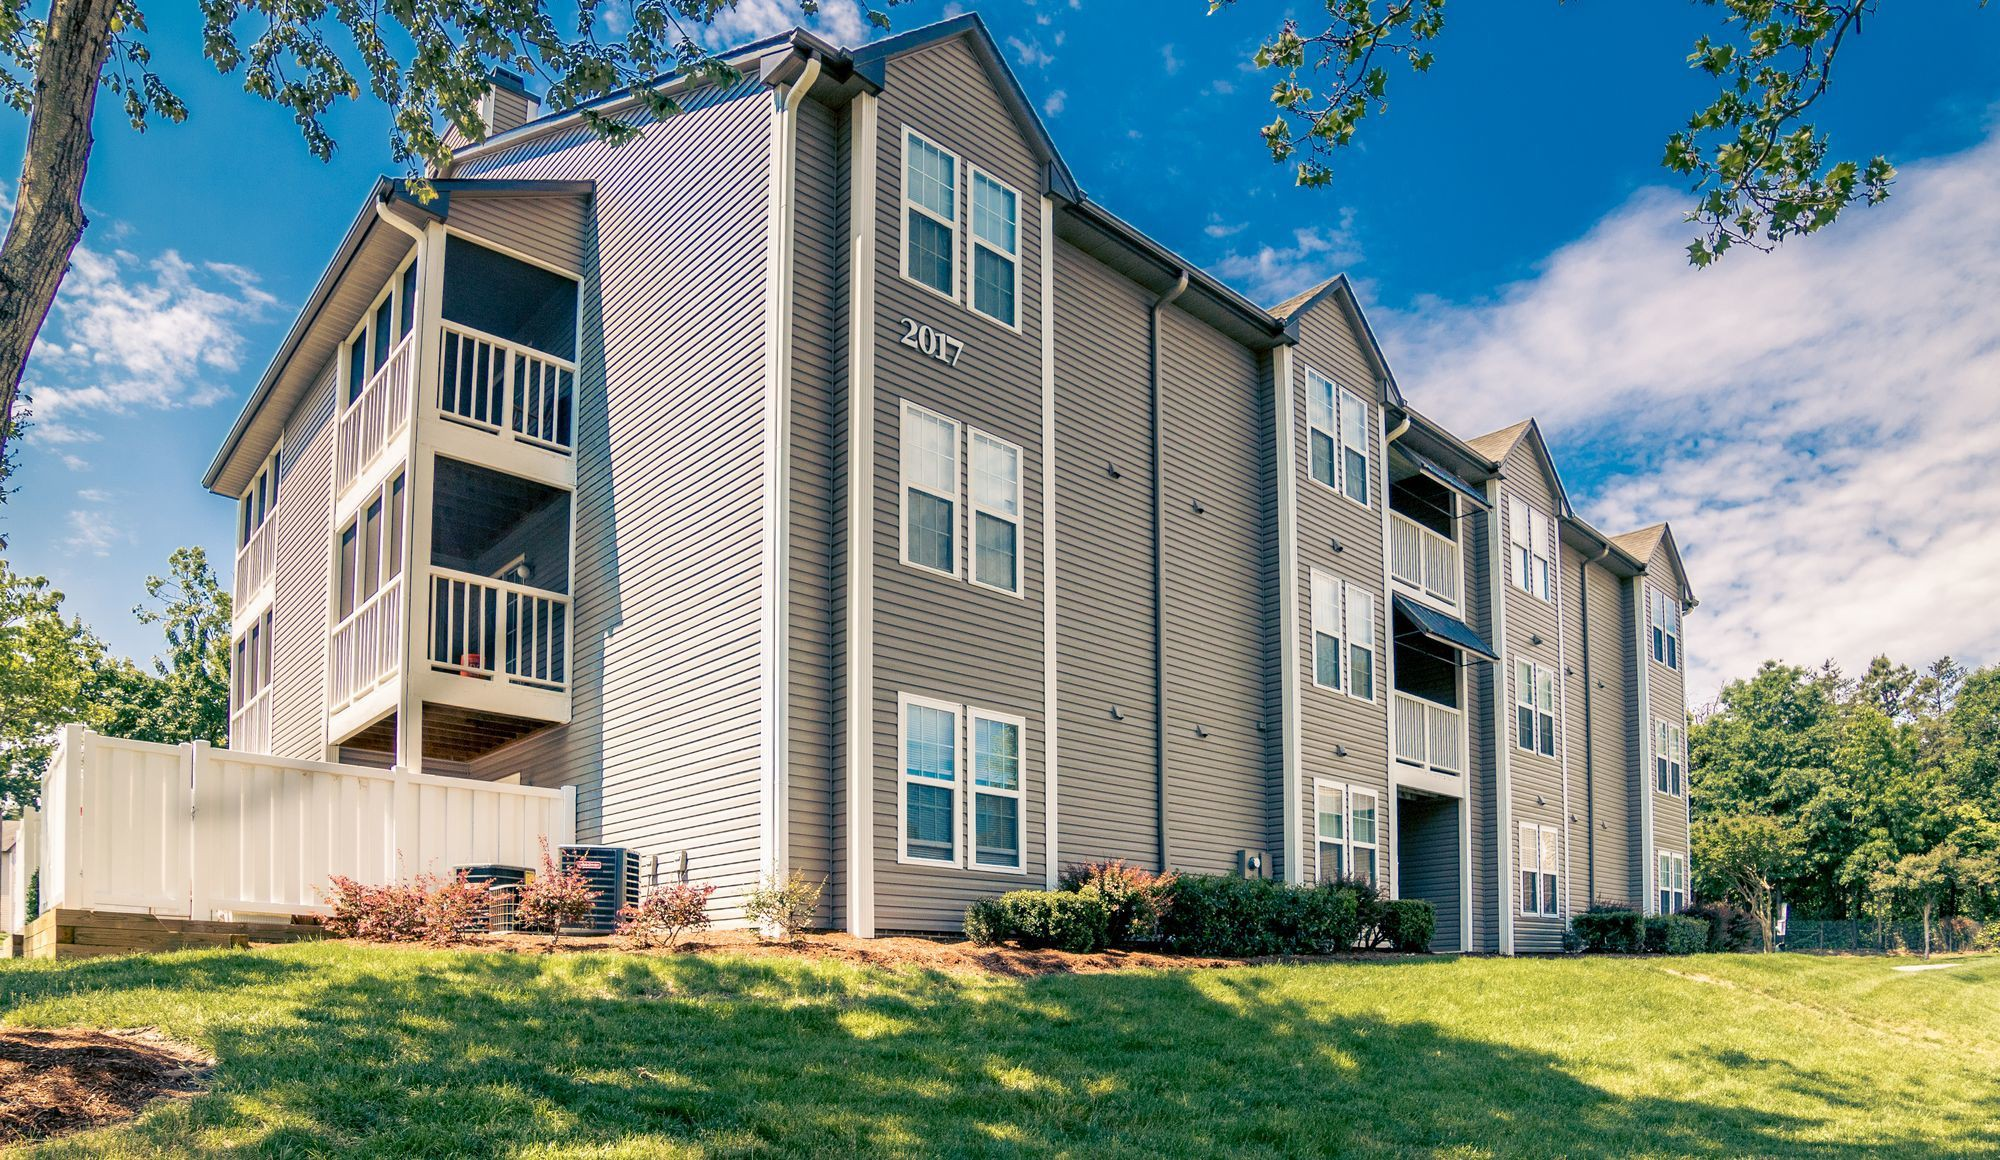 19 Apartments in Jamestown, NC (AVAIL now)